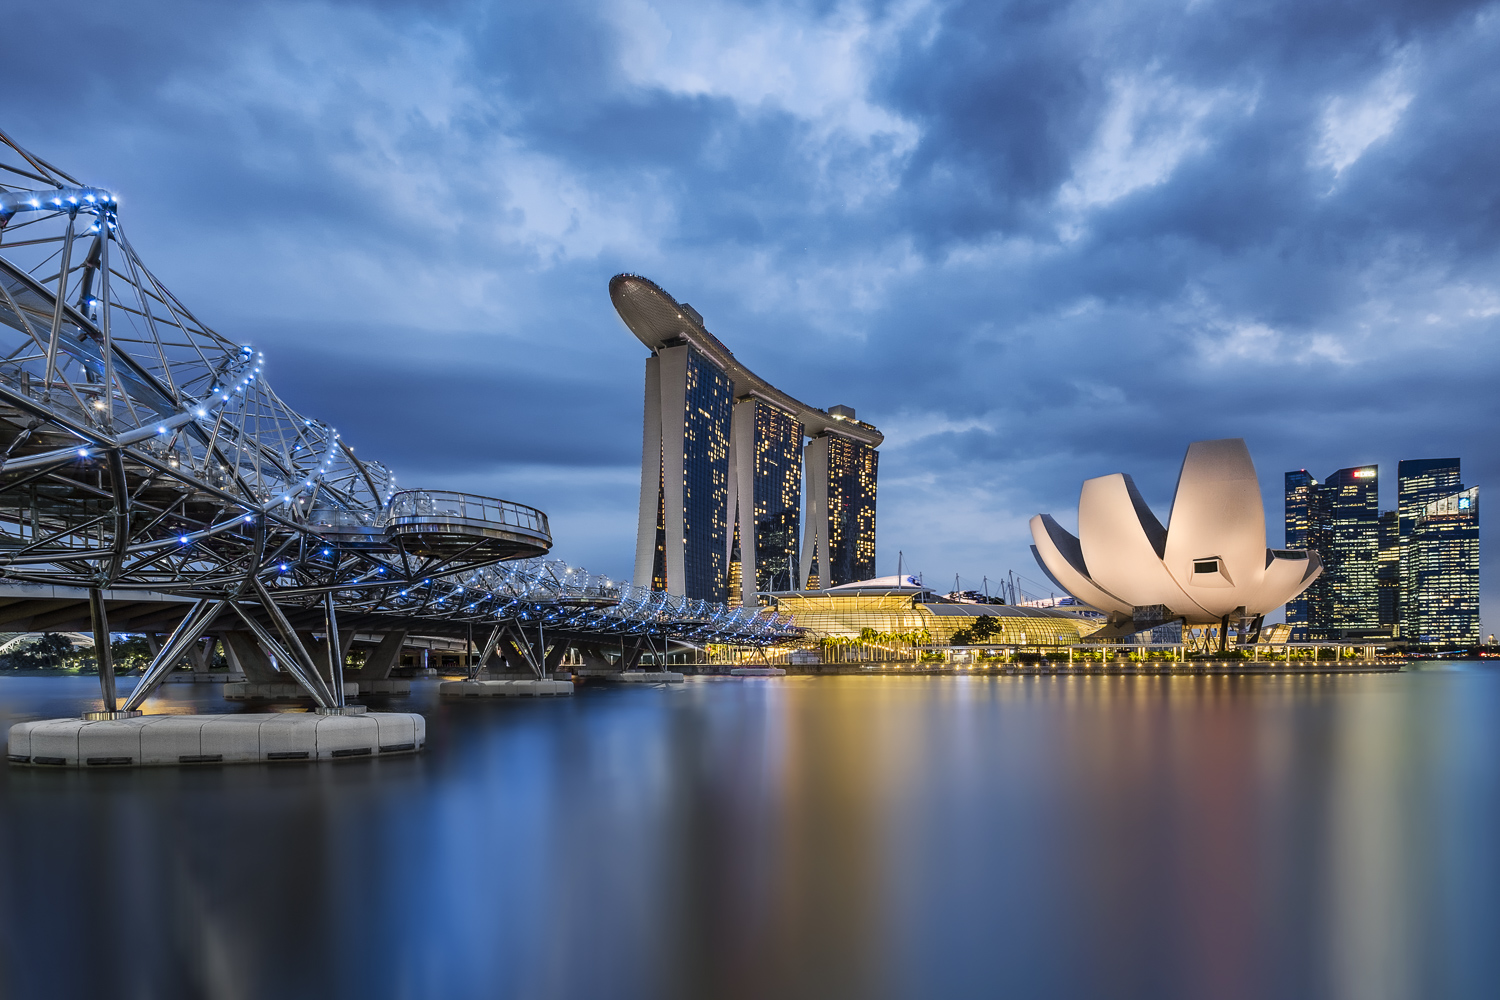 Photograph of the Sandbar, Helix Bridge and the ArtScience Museum in Singapore at night